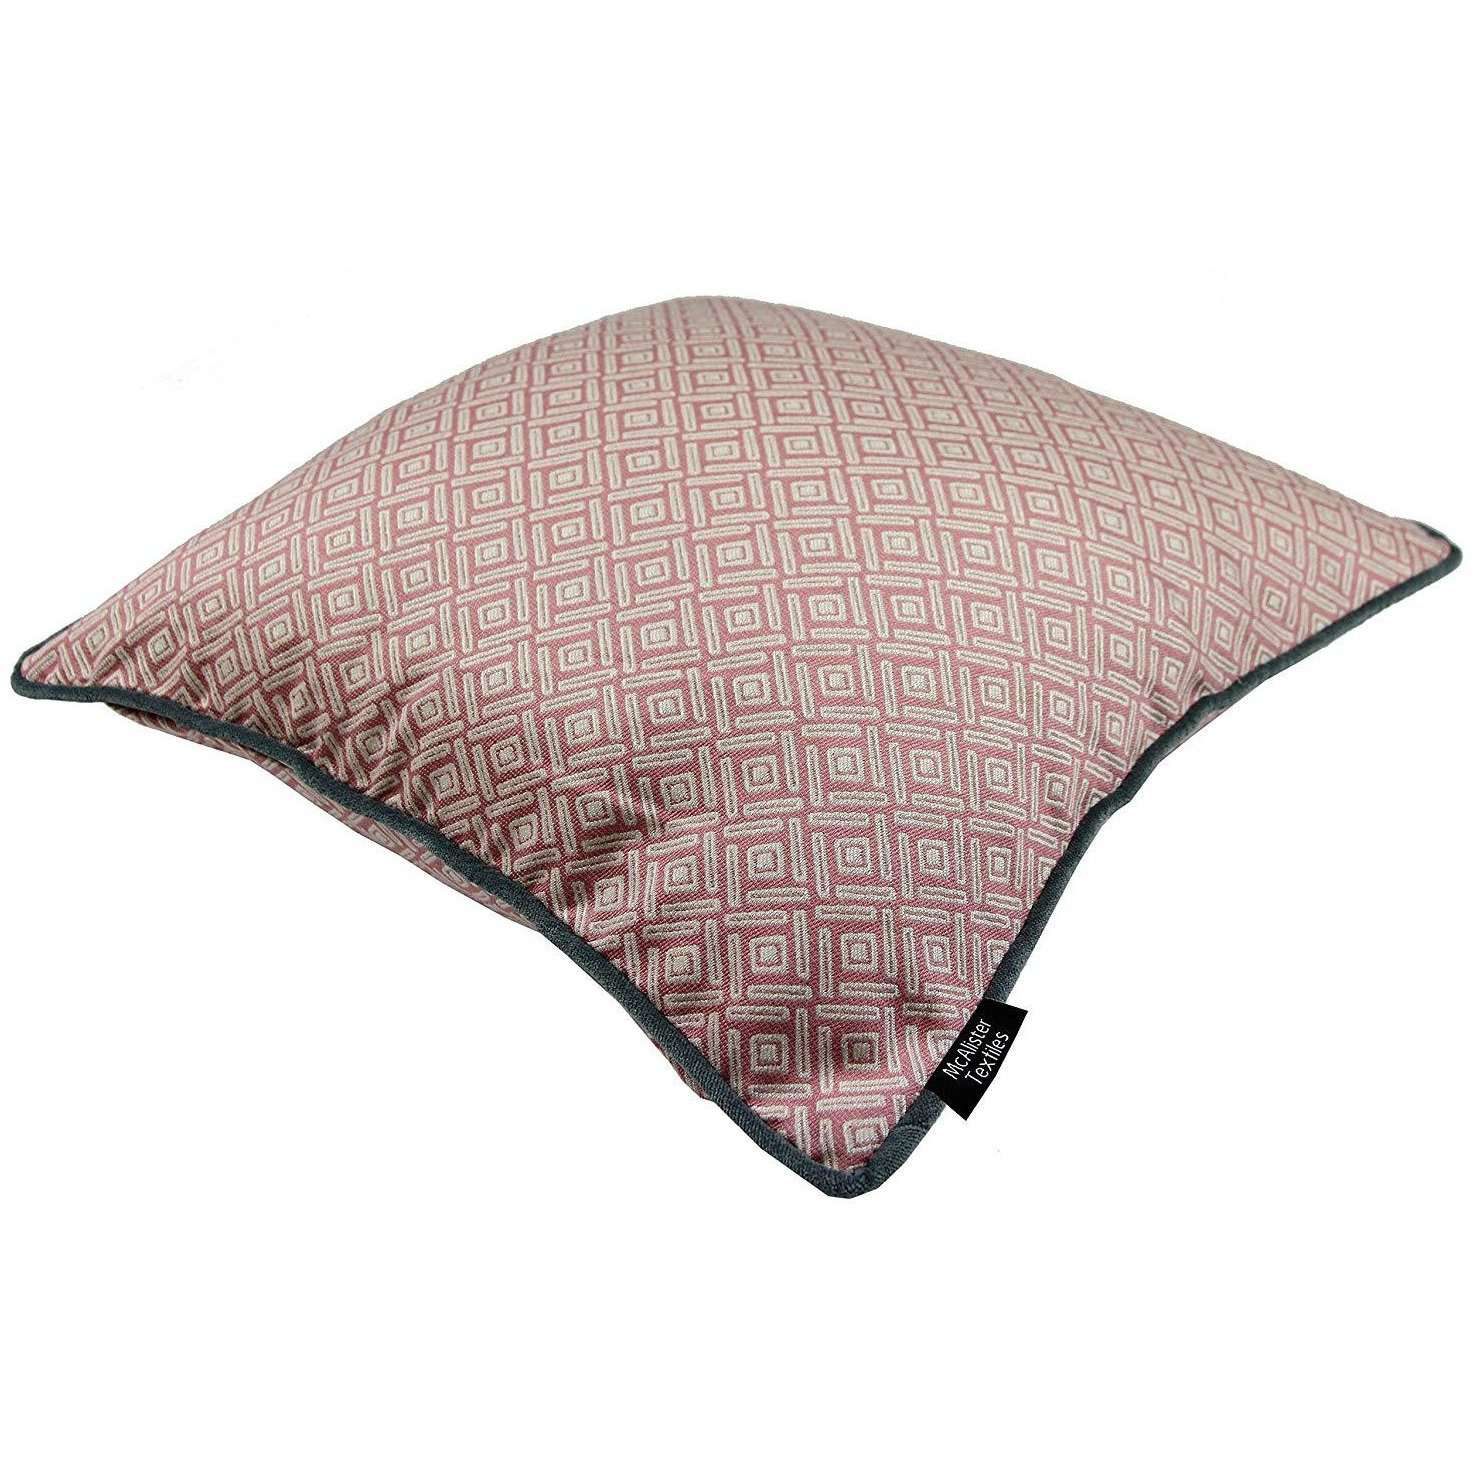 McAlister Textiles Scandinavian Blush Pink 43cm x 43cm Cushion Set of 3 Cushions and Covers